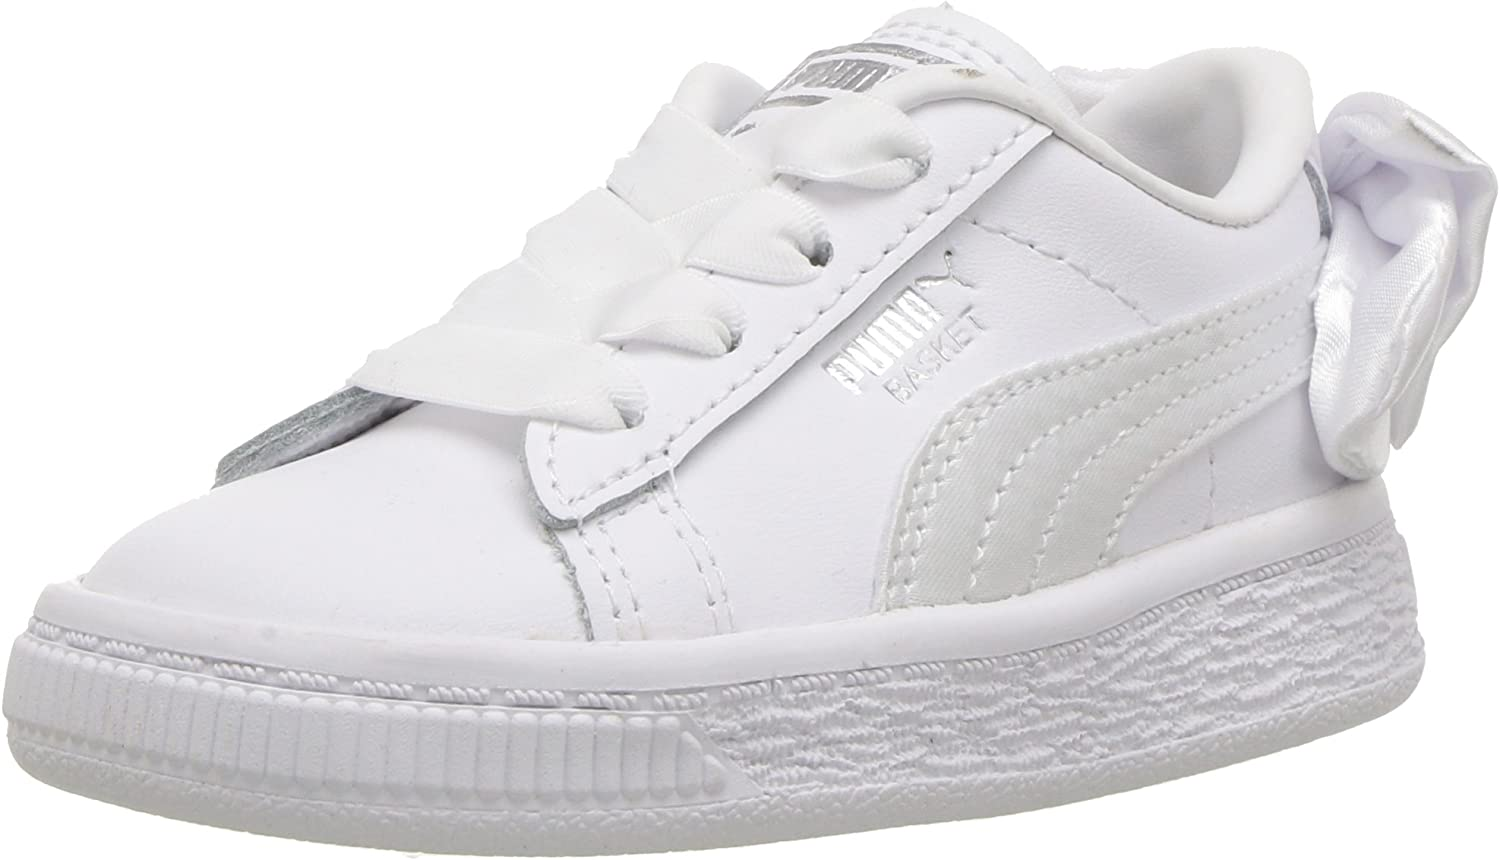 PUMA Kids Basket Bow Slip On Sneaker